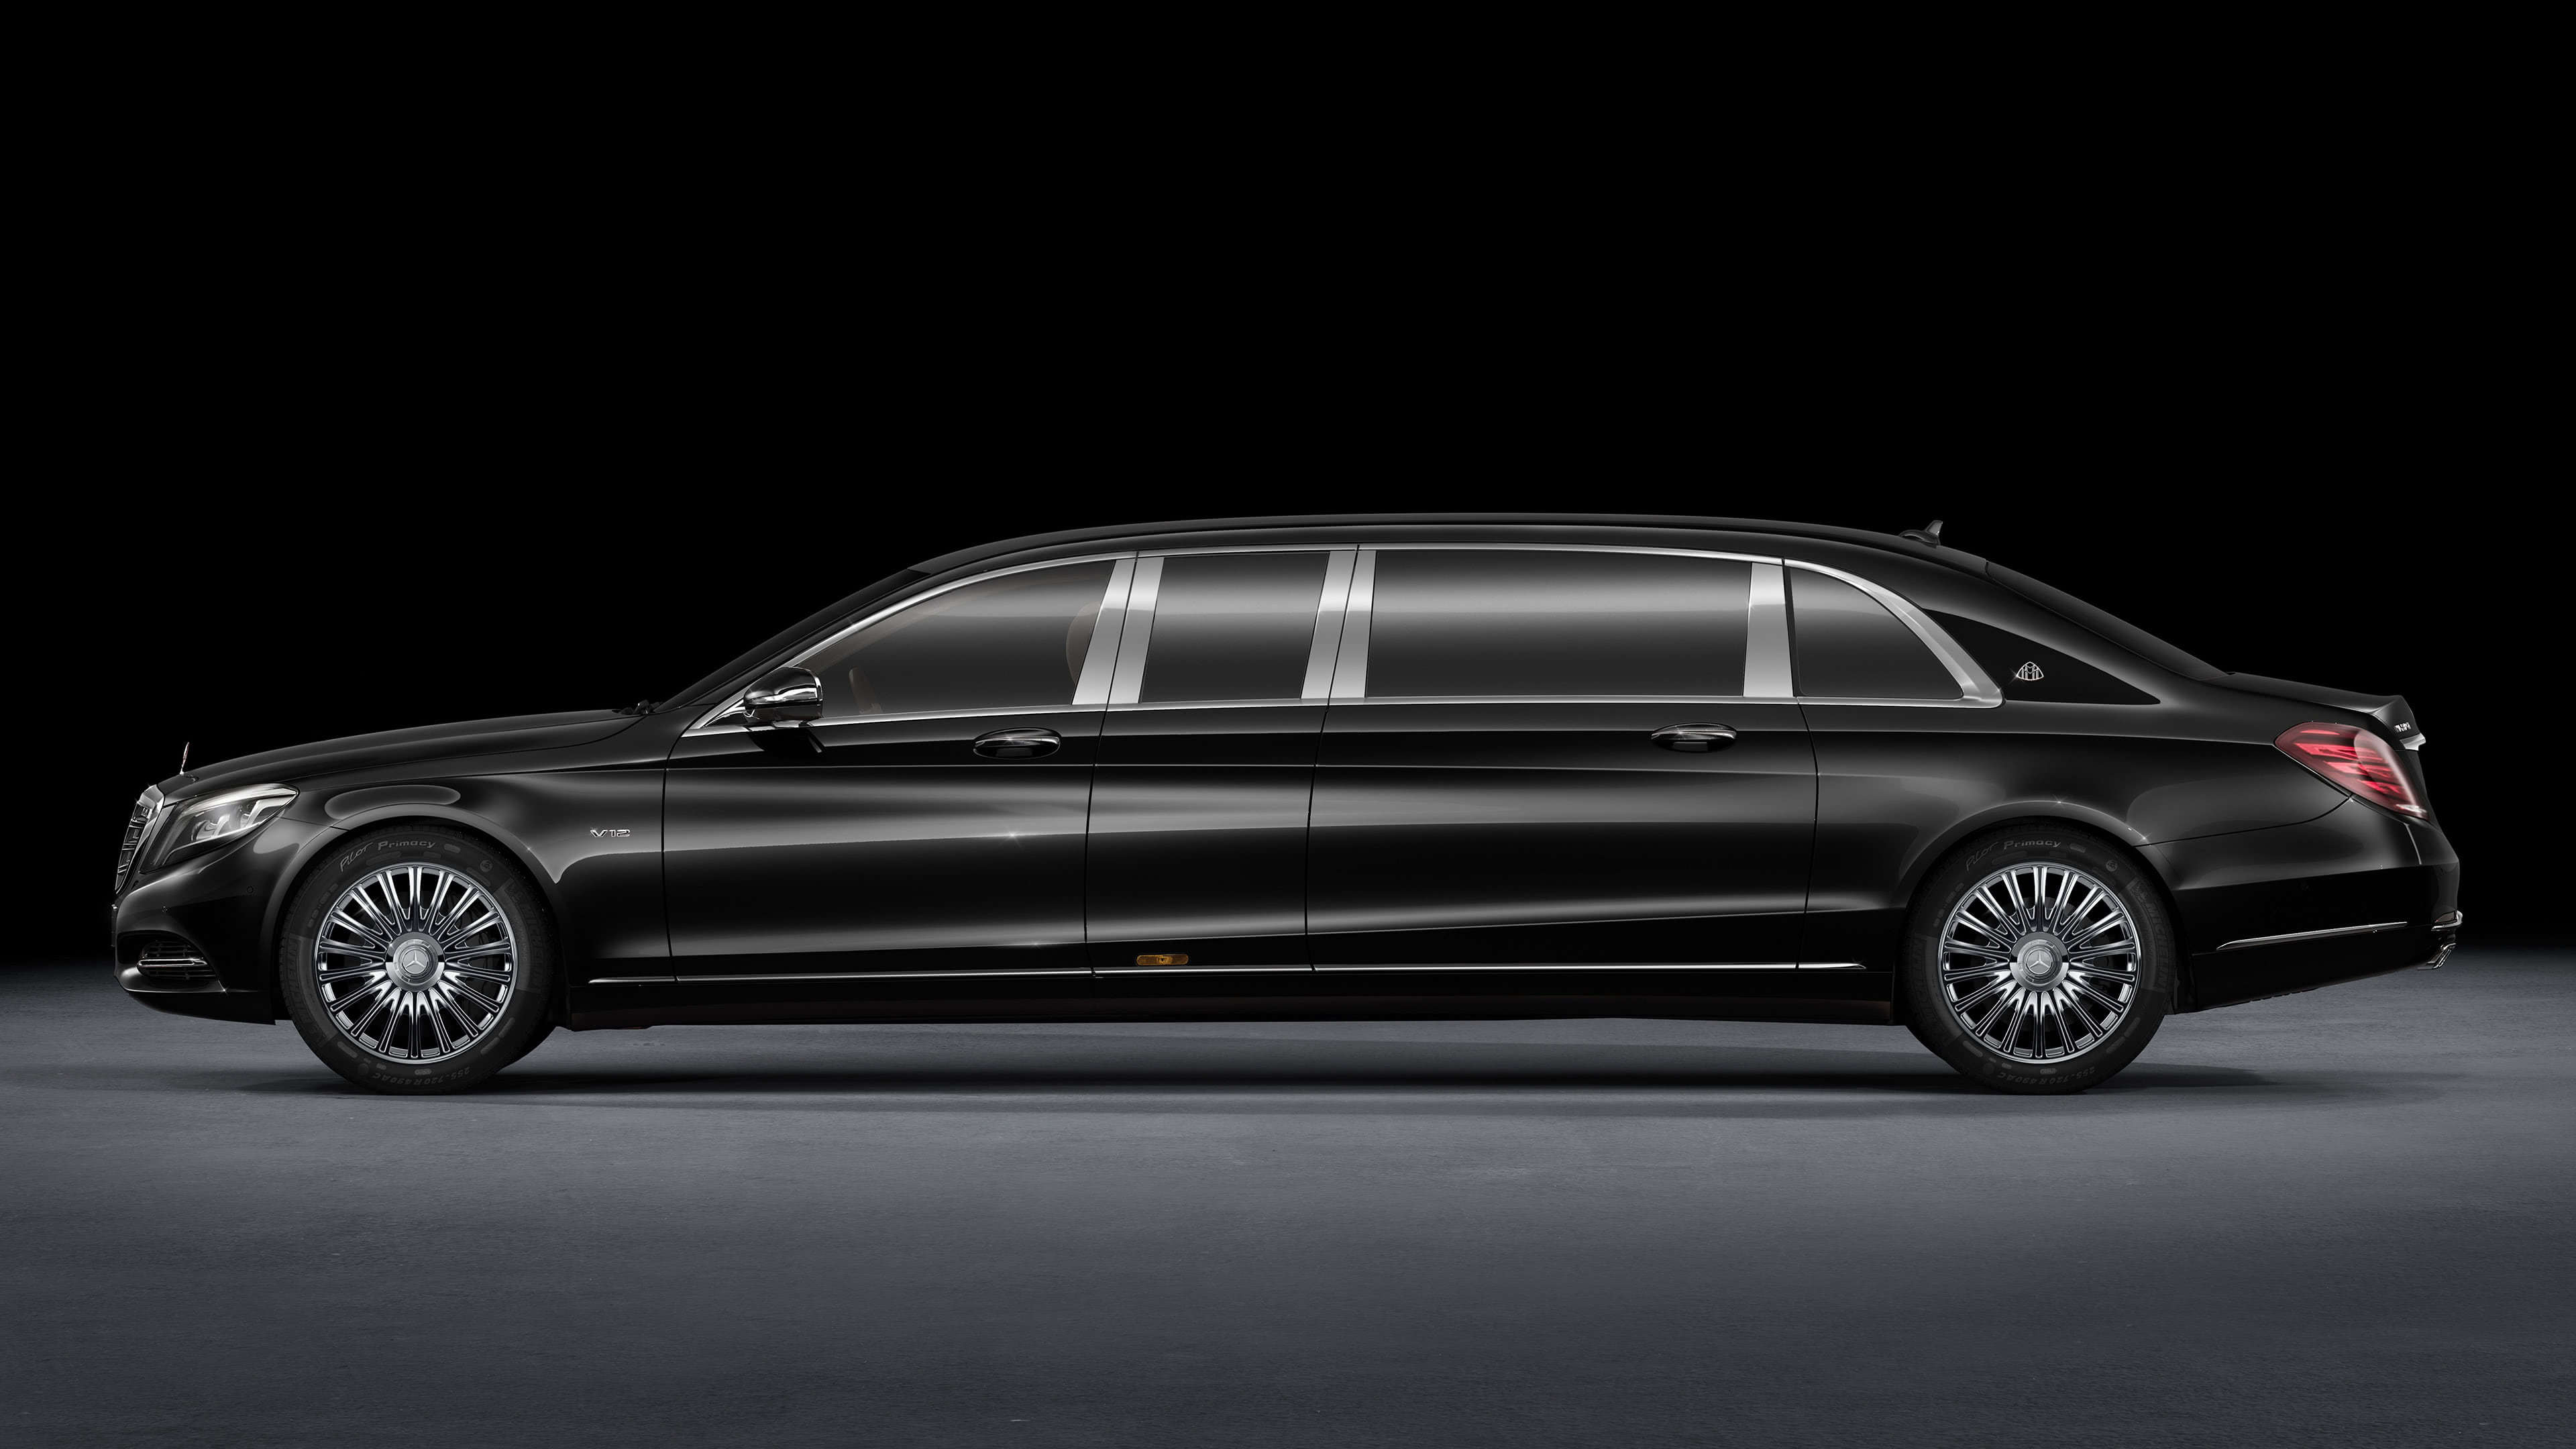 mercedes maybach s600 pullman sedan uhd 4k wallpaper